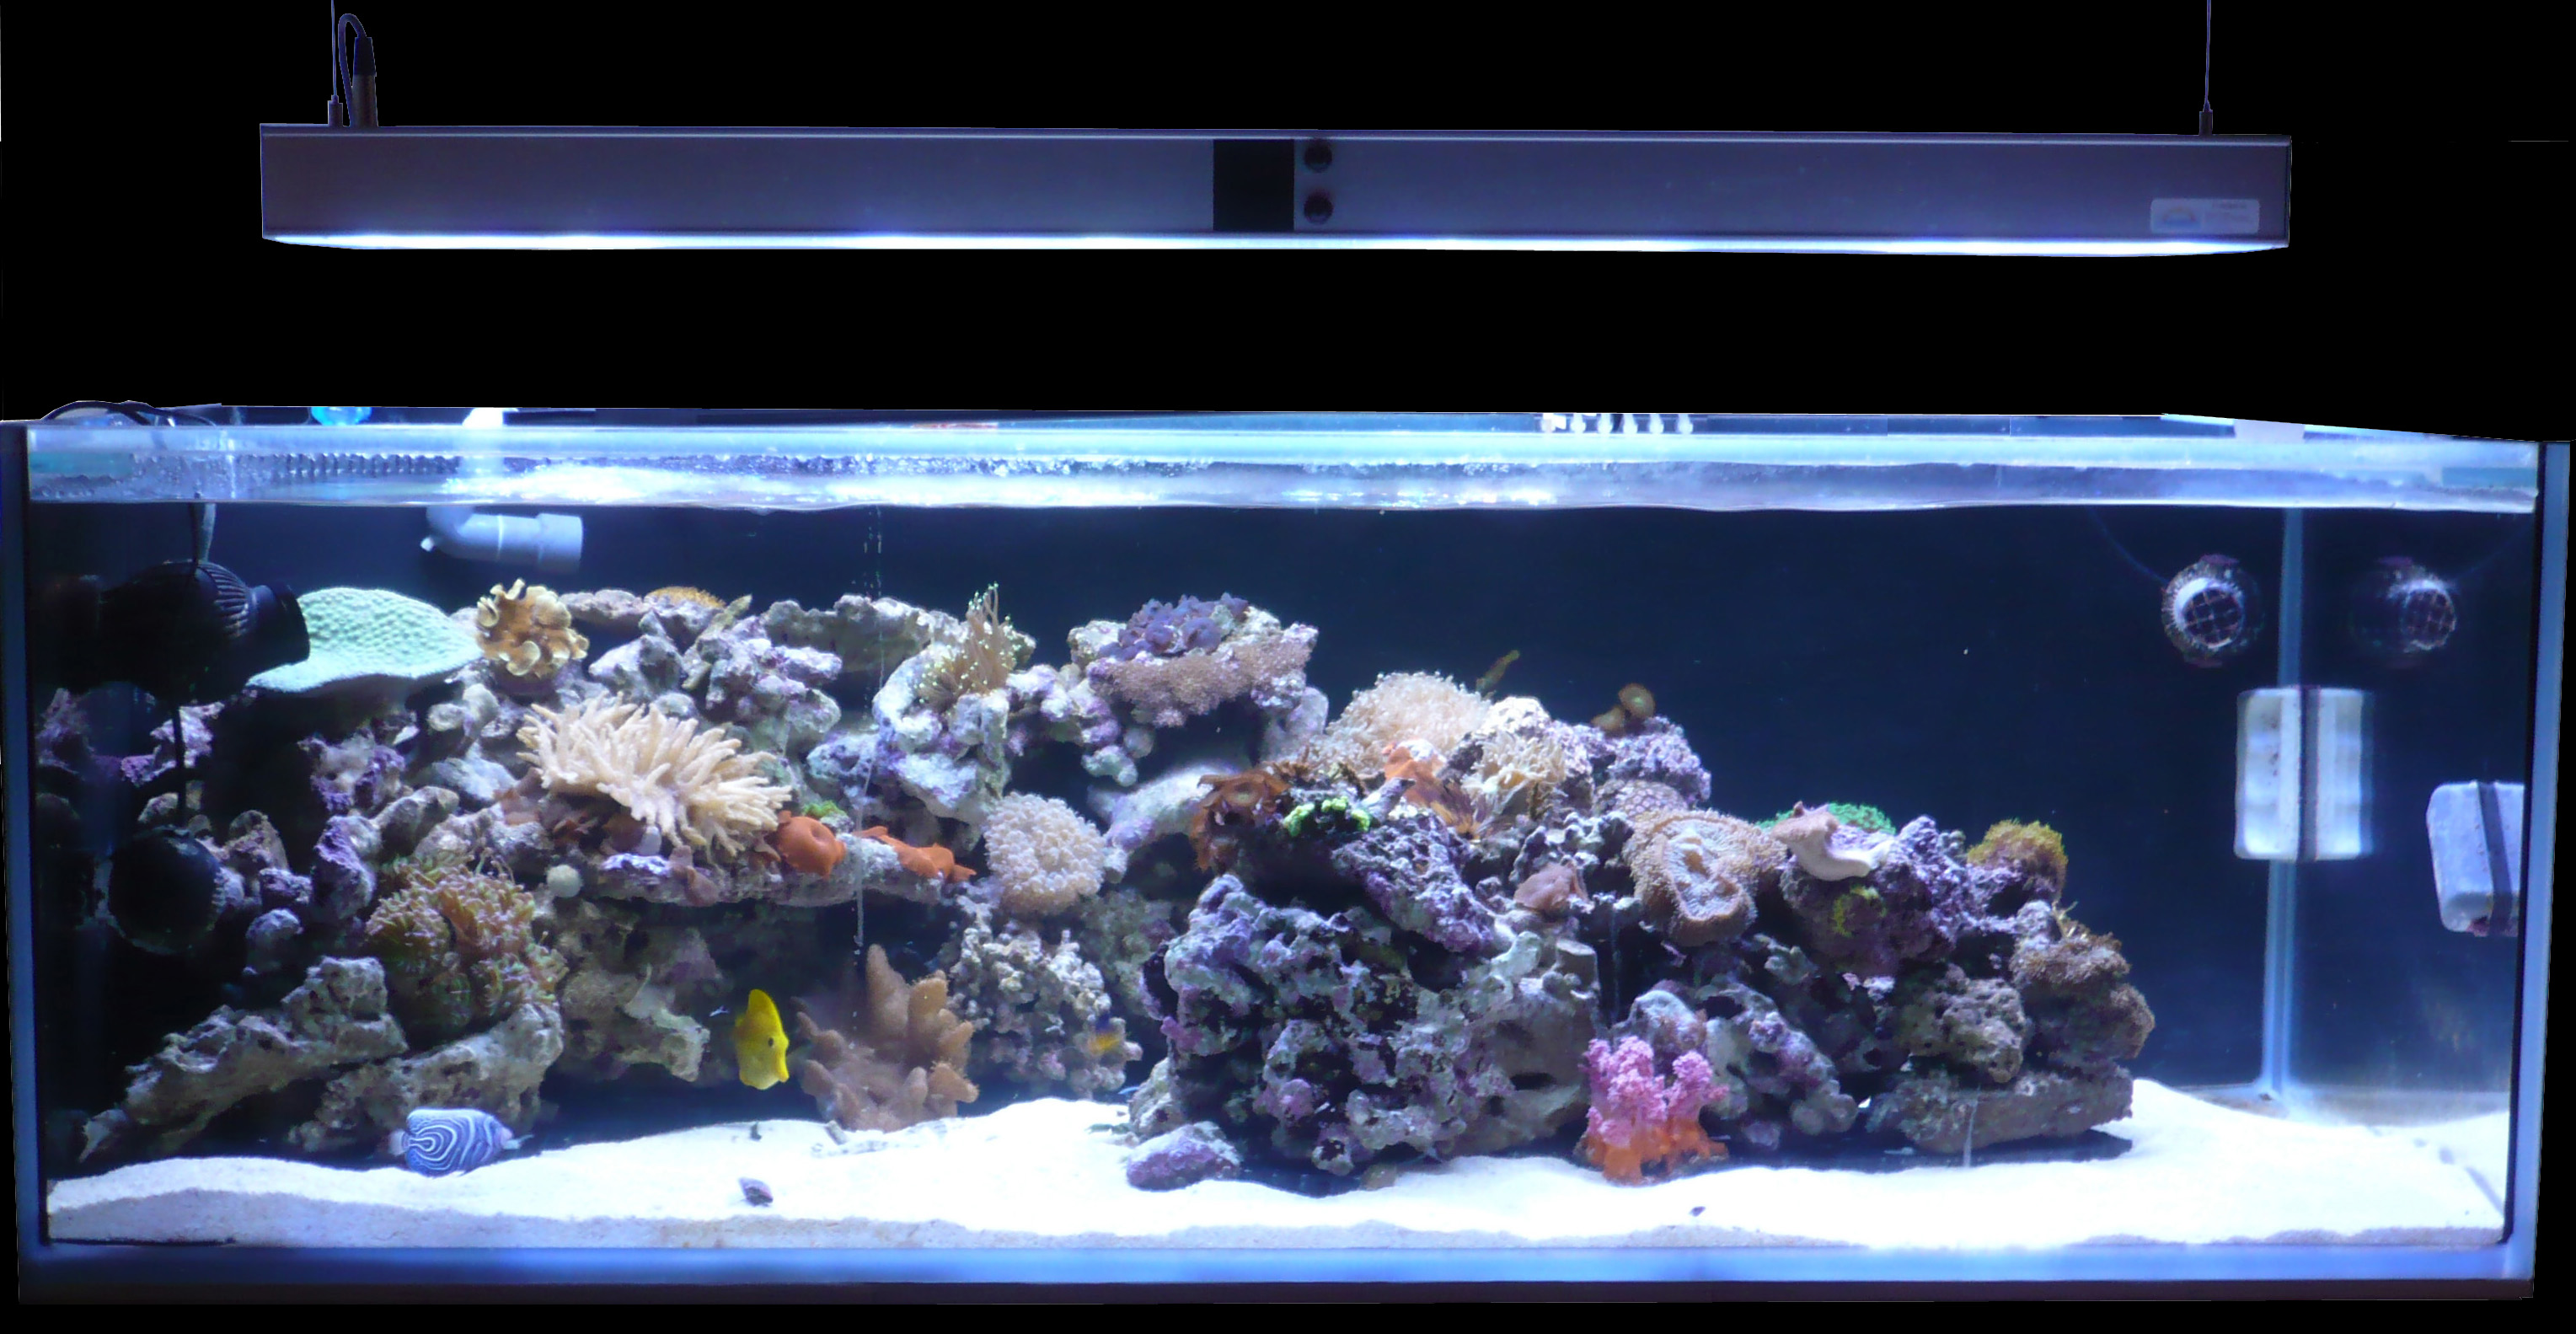 eclairage led aquarium